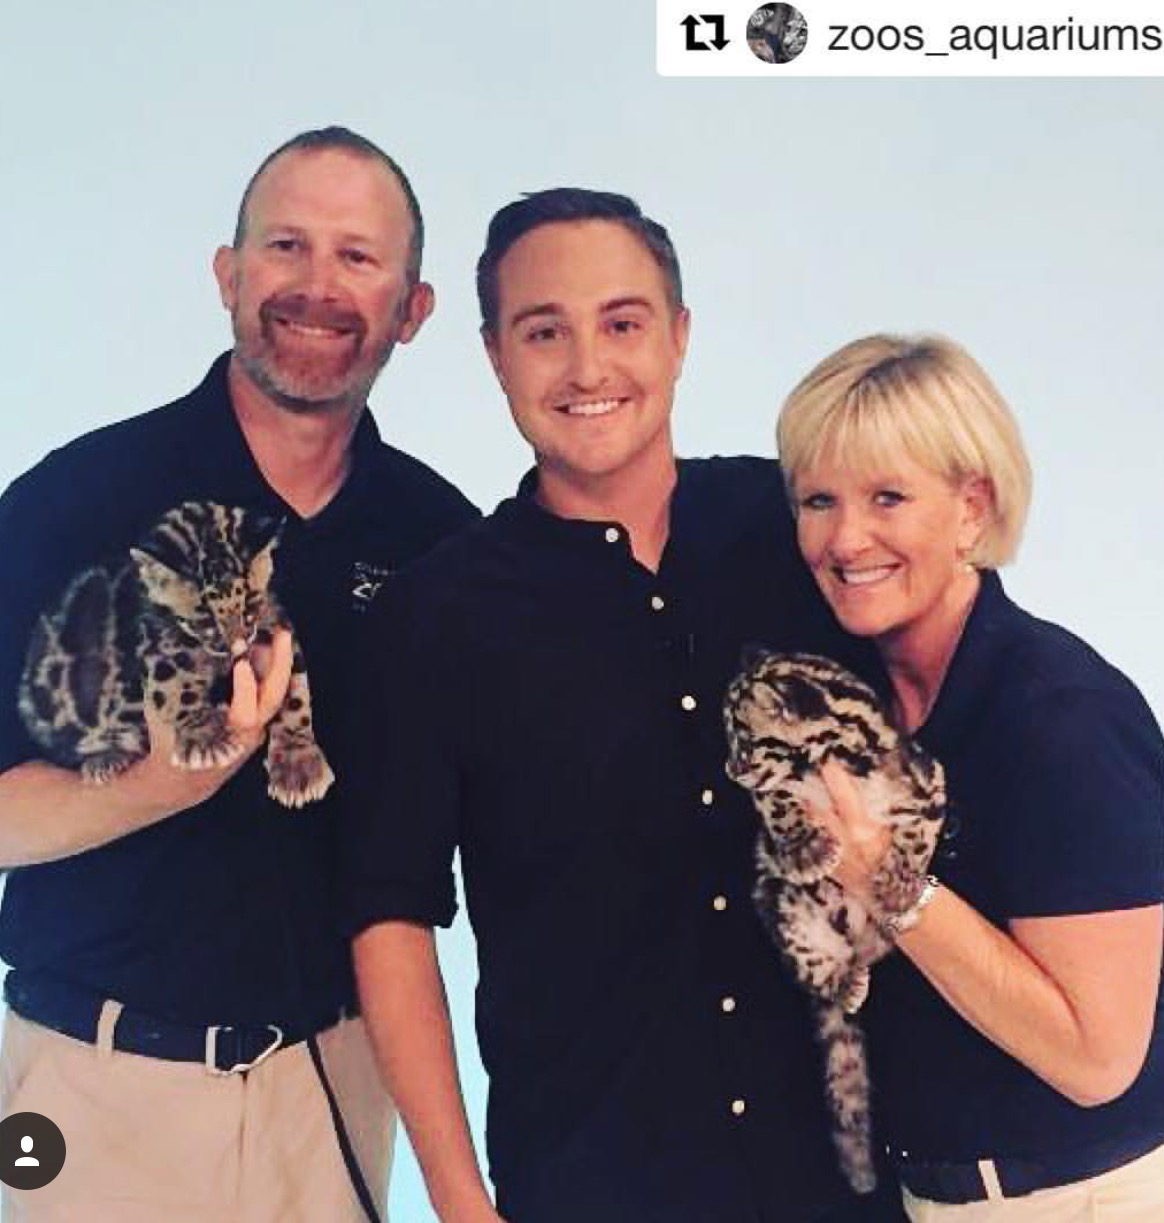 Brian and Suzy from The Columbus Zoo.